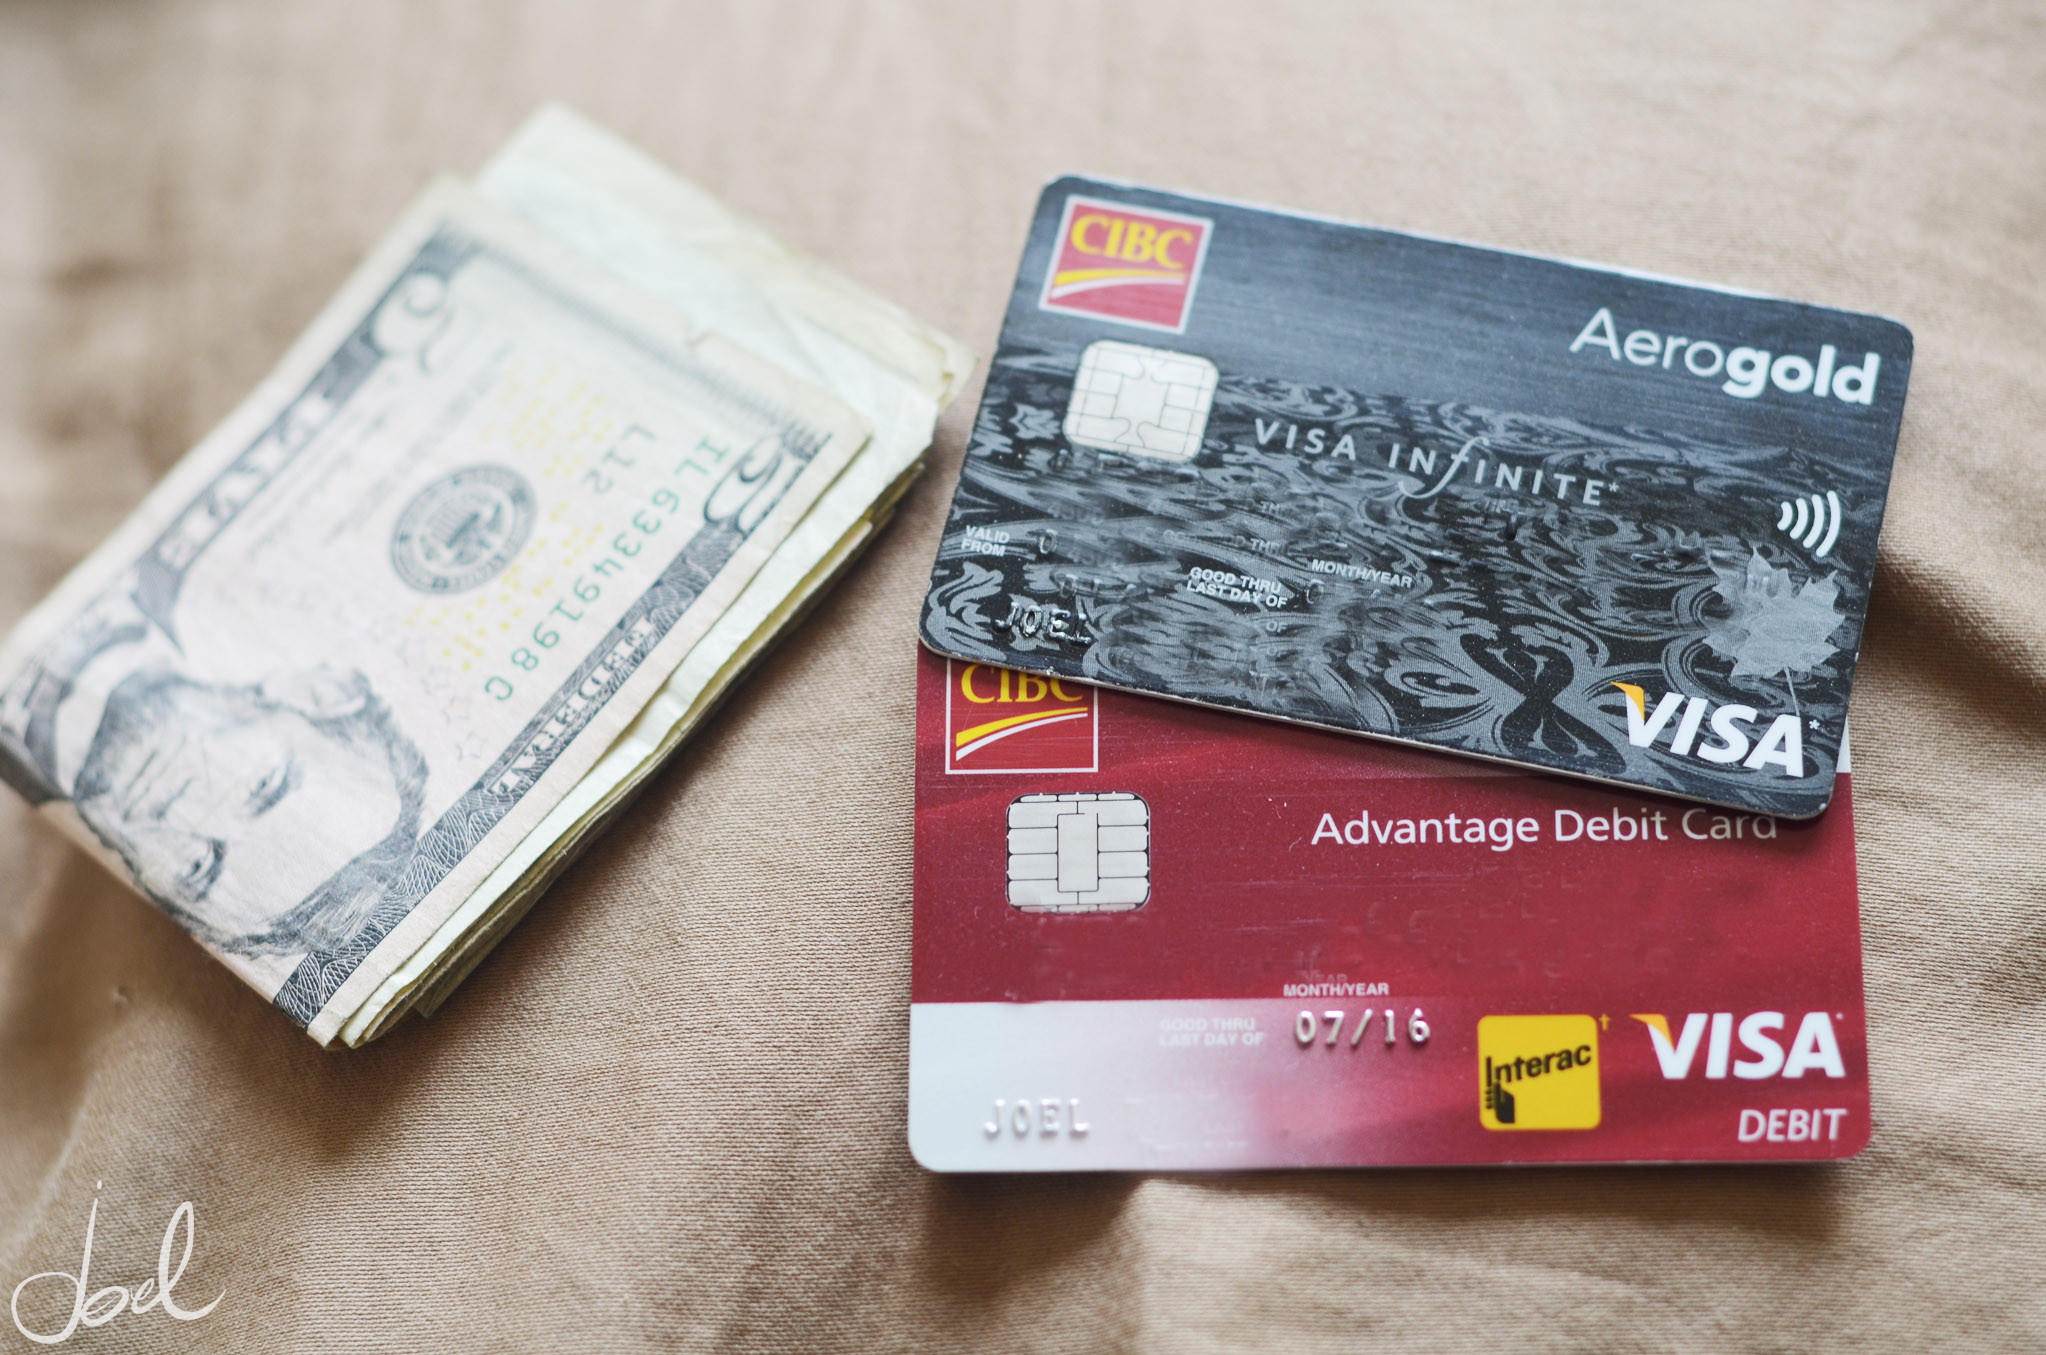 Cash, Debit and Credit Cards – A Balancing Act When Traveling